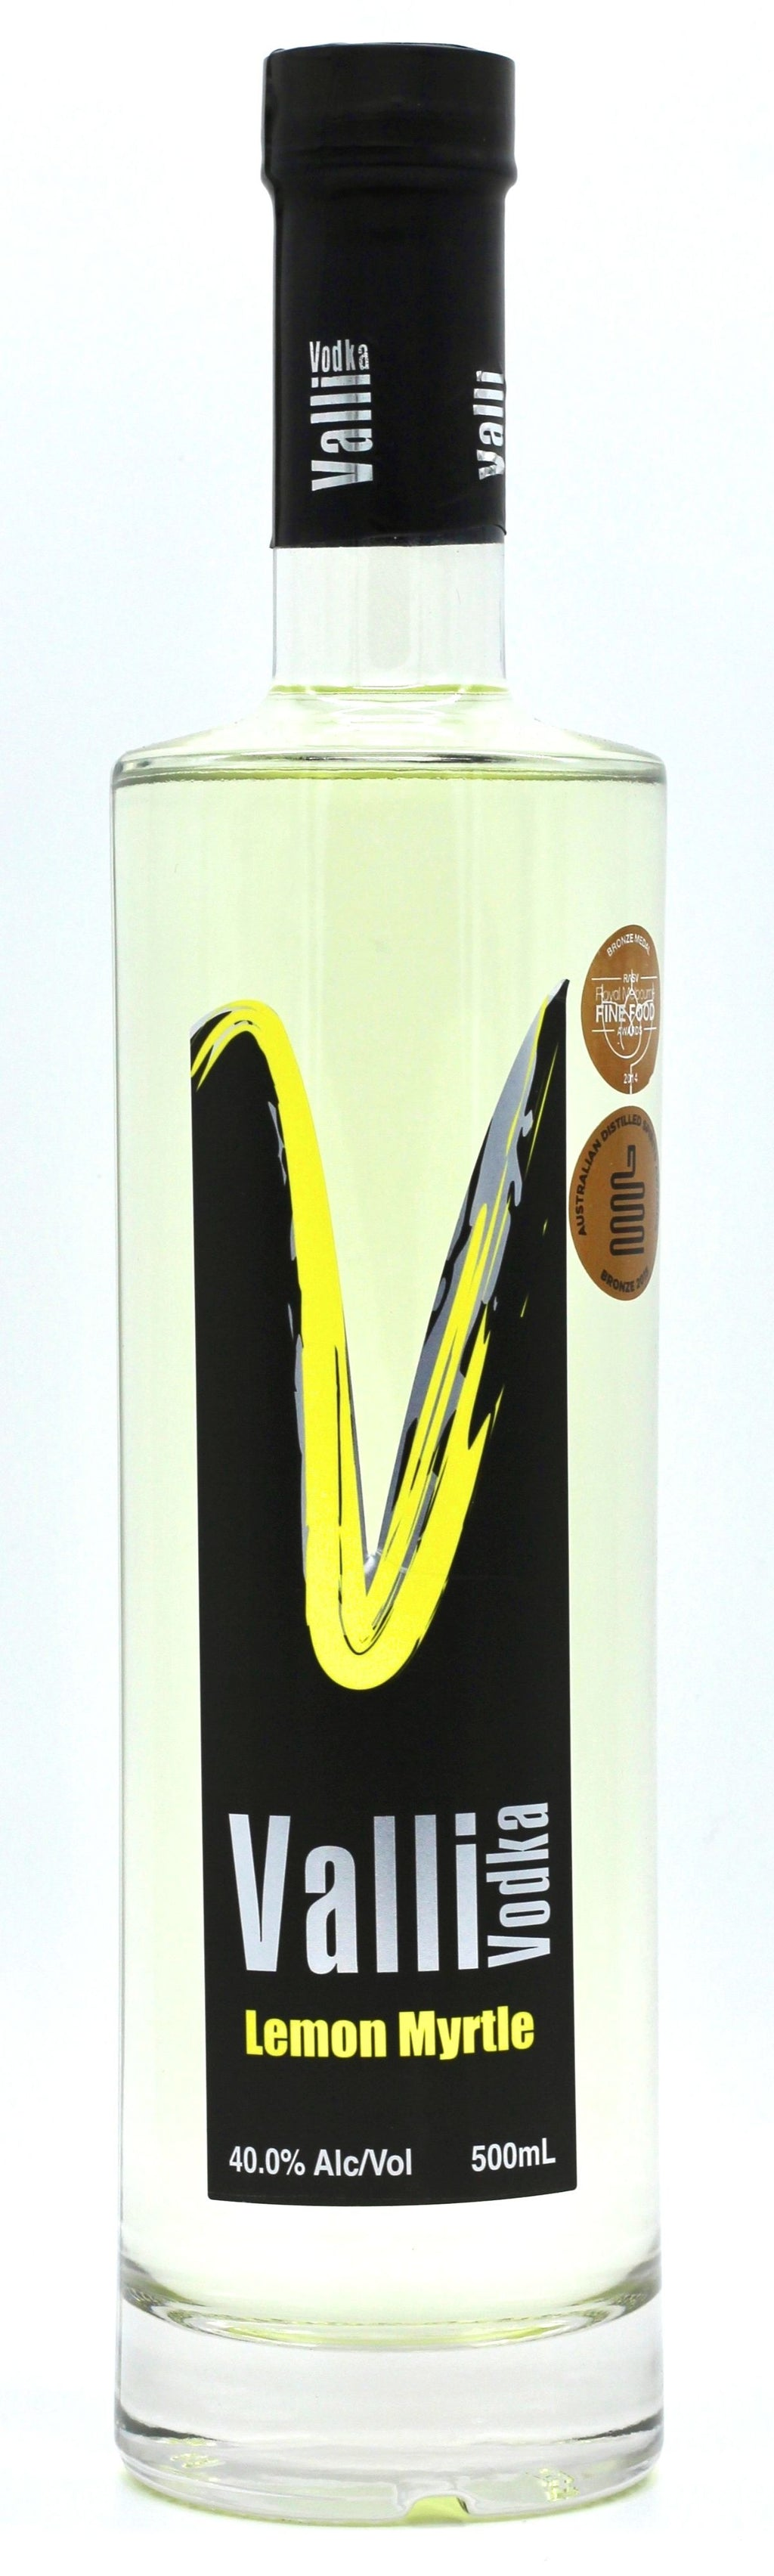 Valli Lemon Myrtle Vodka